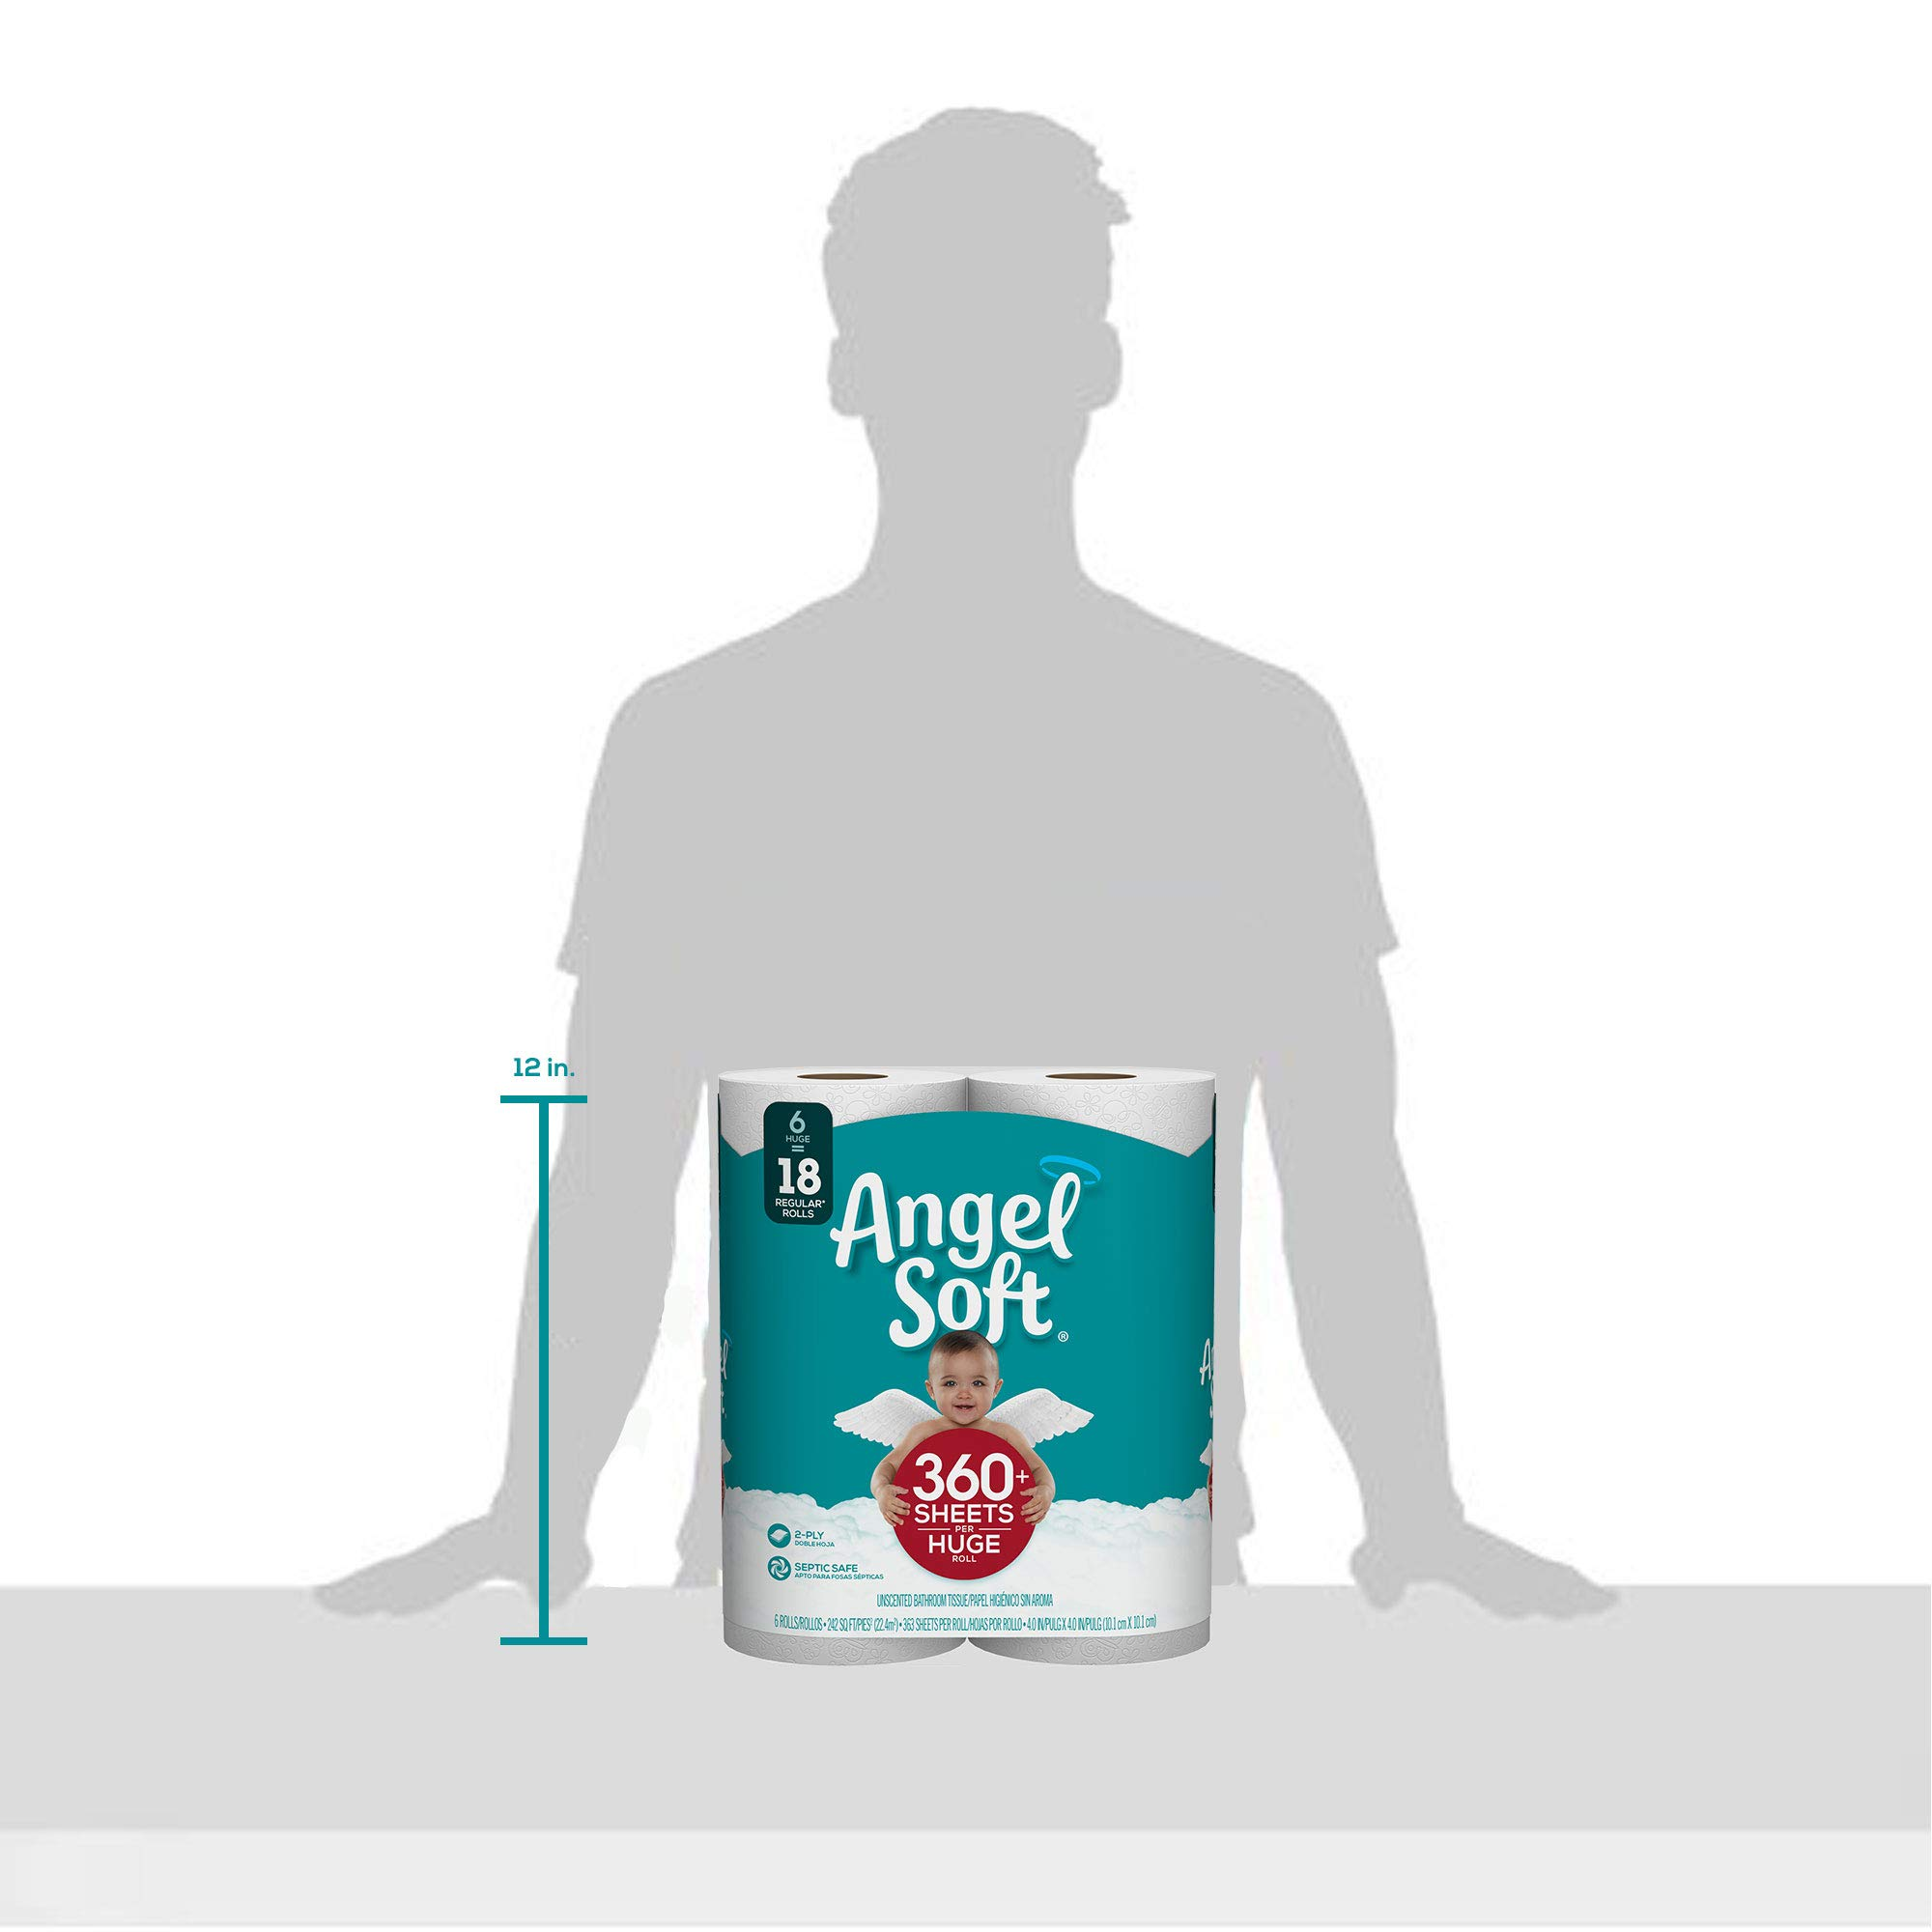 ANGEL SOFT Toilet Paper Bath Tissue, 36 Huge Rolls, 360+ 2-Ply Sheets Per Roll by Angel Soft (Image #10)